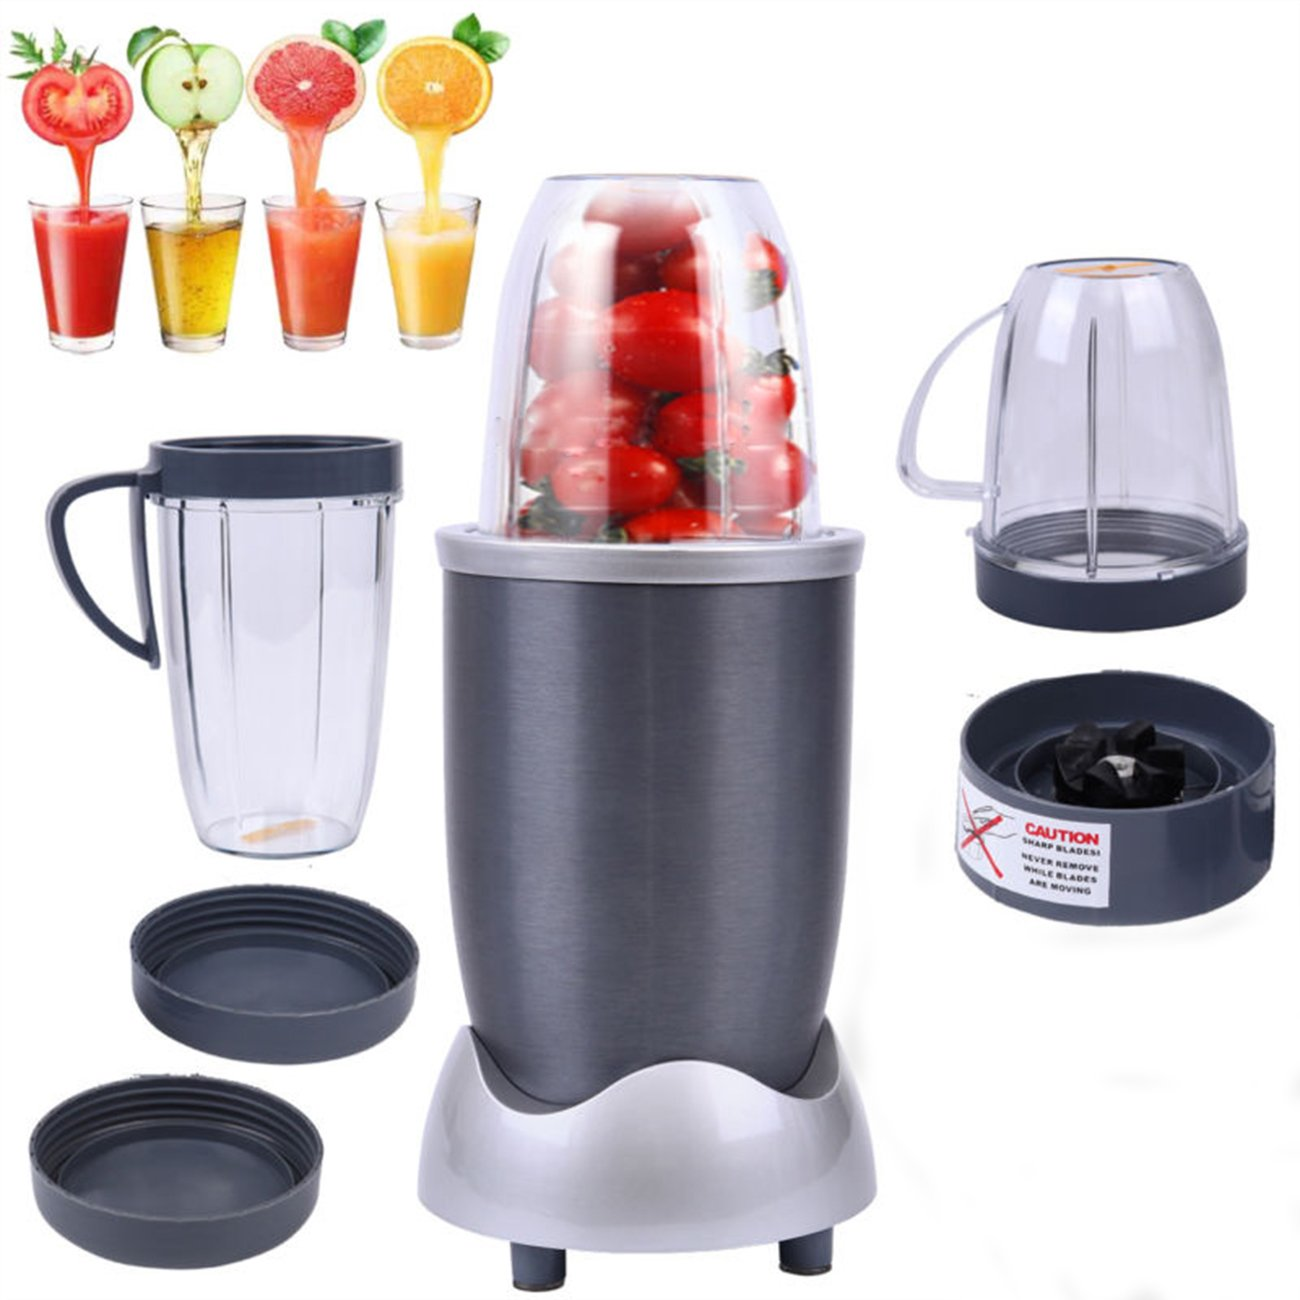 Ridgeyard 600w Portable Fruit Food Blender Electrical Kitchen Food Extractor Mixer Juicer Smoothies Maker Food Fruit Processor